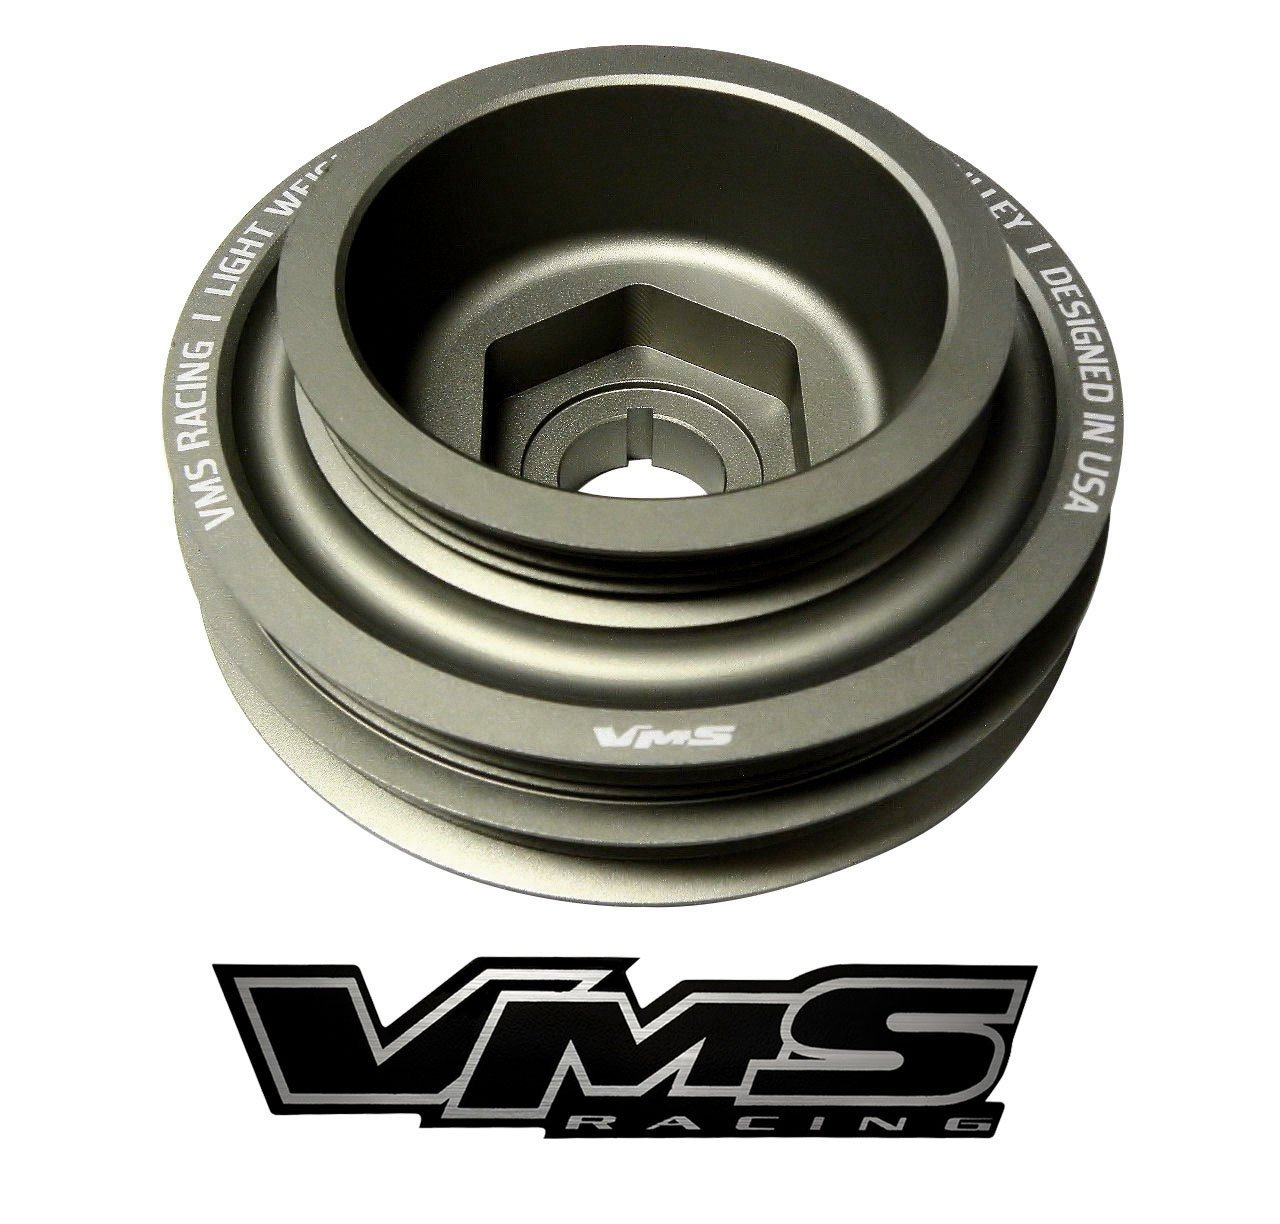 VMS Racing 94-01 Light Weight Billet Aluminum Crankshaft CRANK PULLEY Compatible with Honda Acura Integra GSR Type-R B18B1 B18C1 B18C3 B18C5 1994-2001